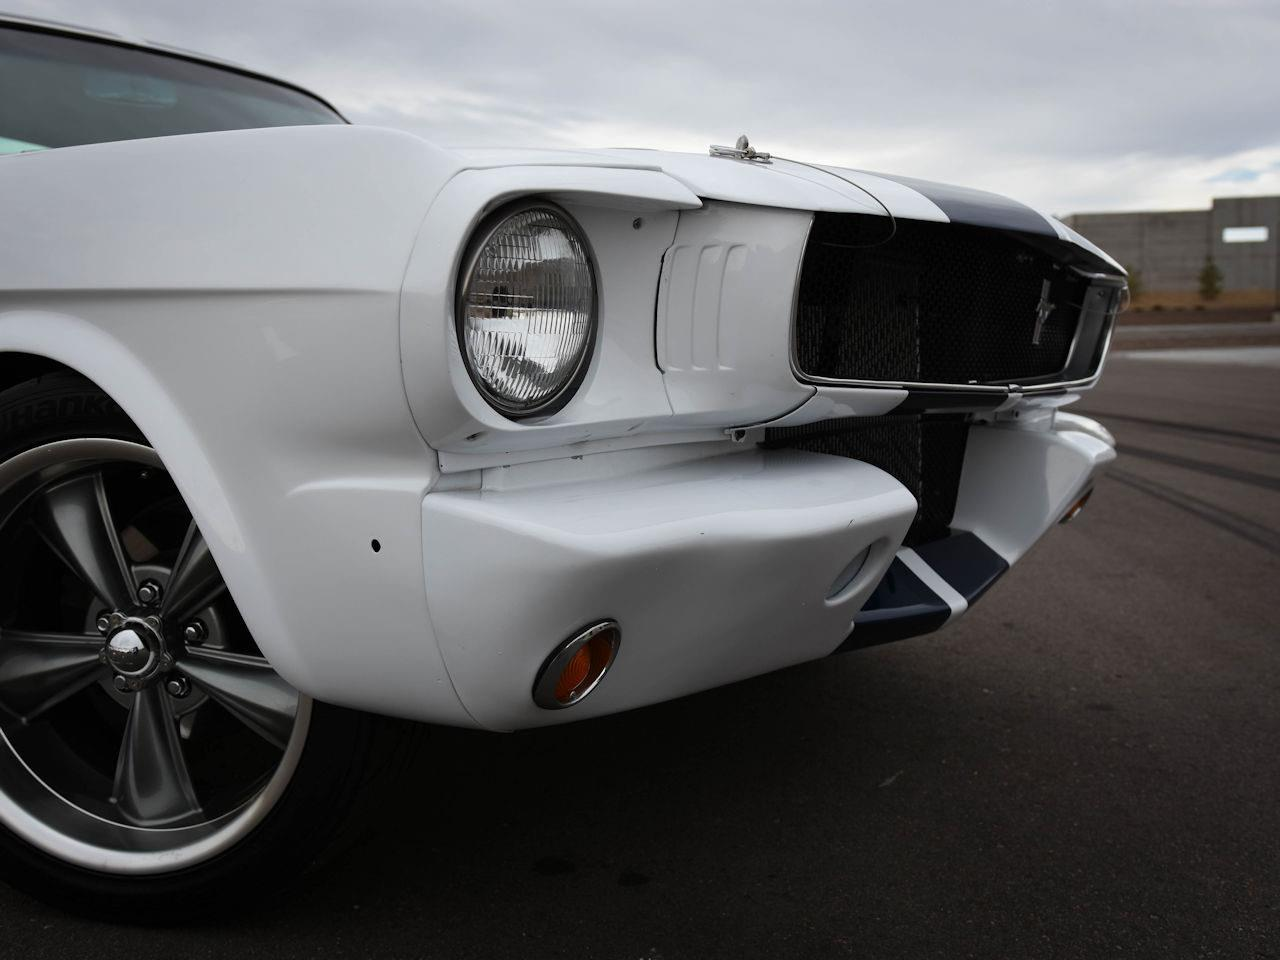 Large Picture of '65 Ford Mustang located in Illinois - $49,995.00 - MOAC